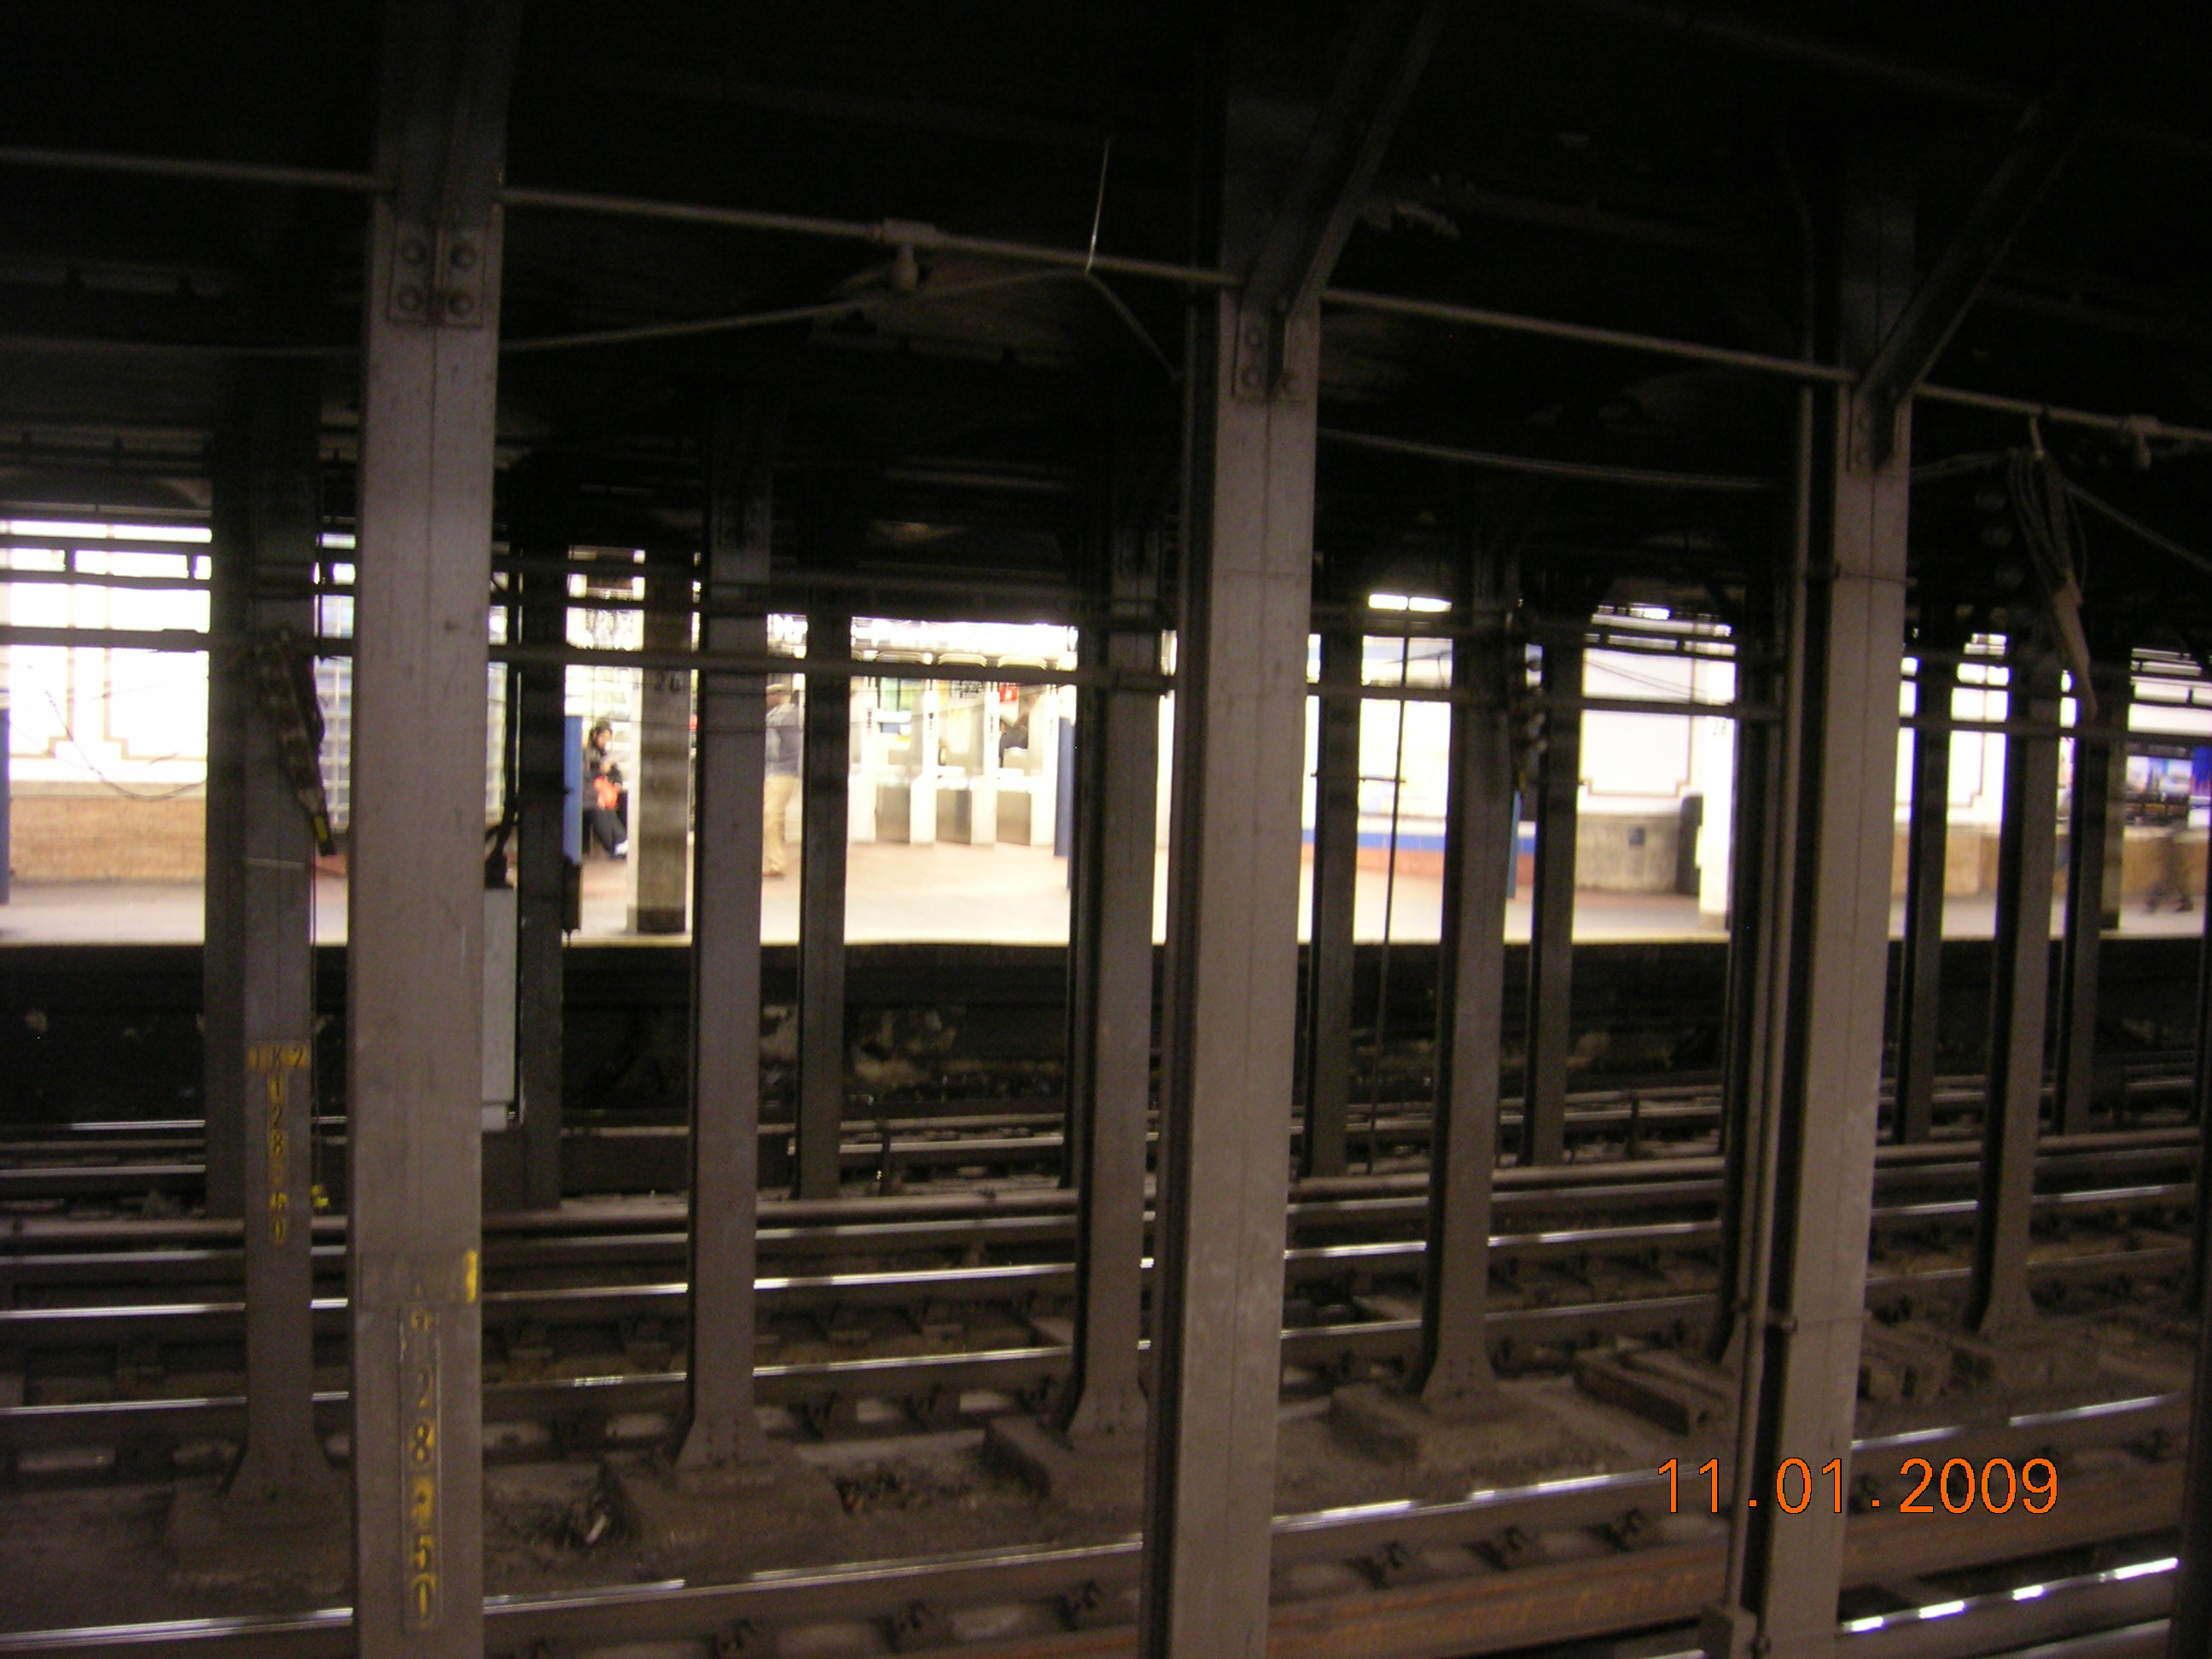 28th St. station, 6 train (green line)